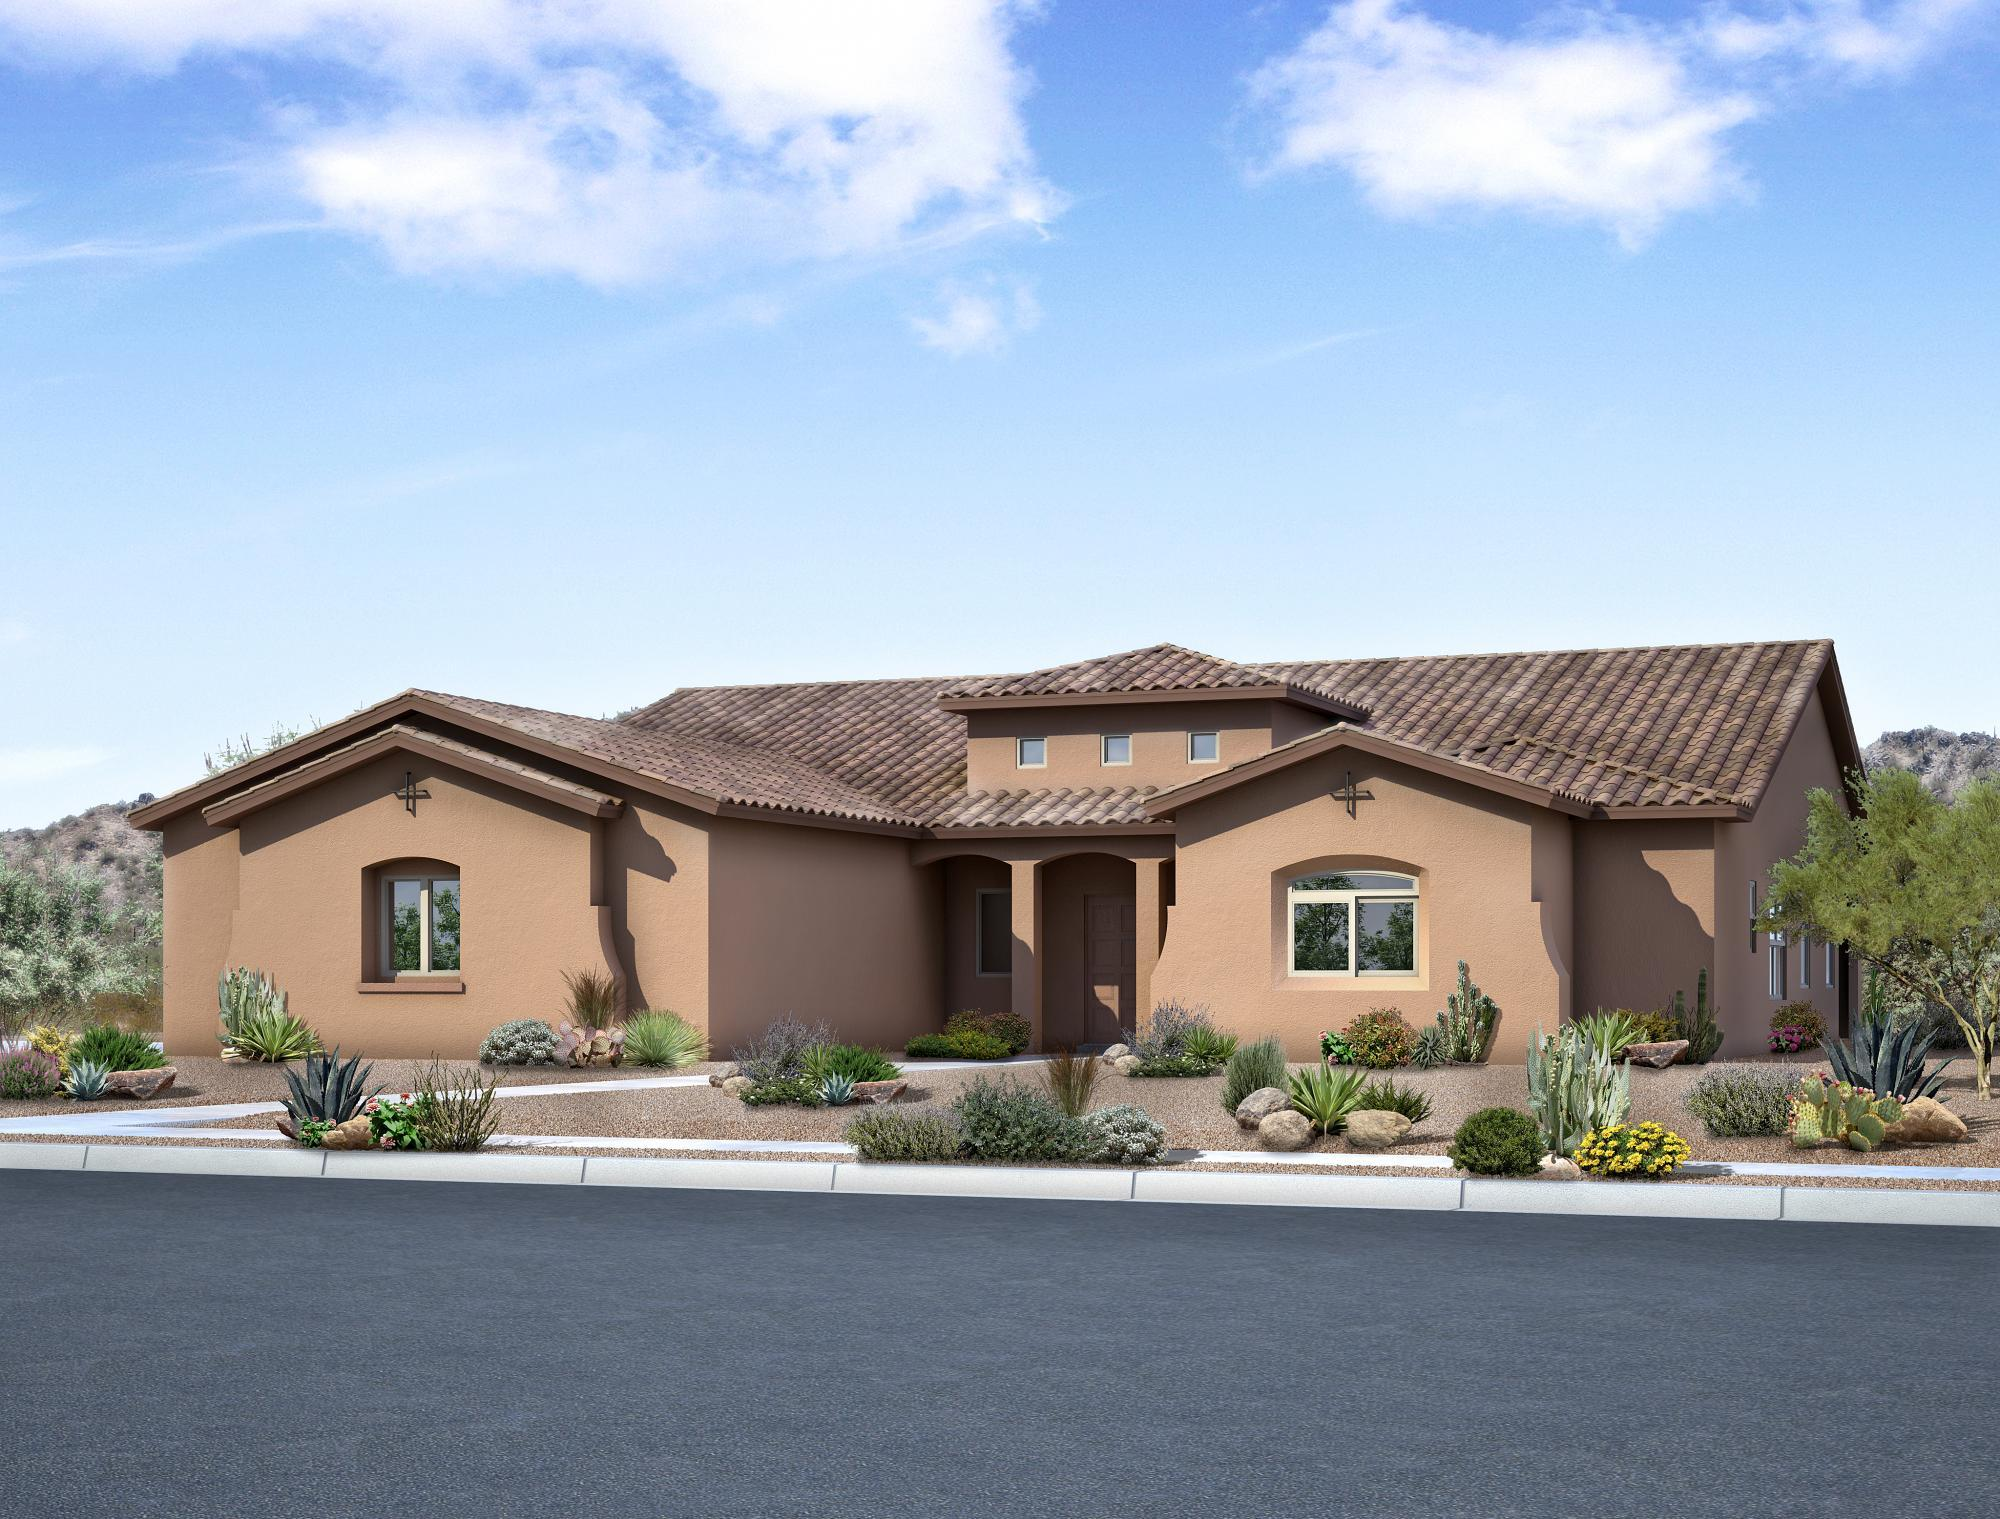 New mexico houses for sale and new mexico homes for sale for Home builders in new mexico